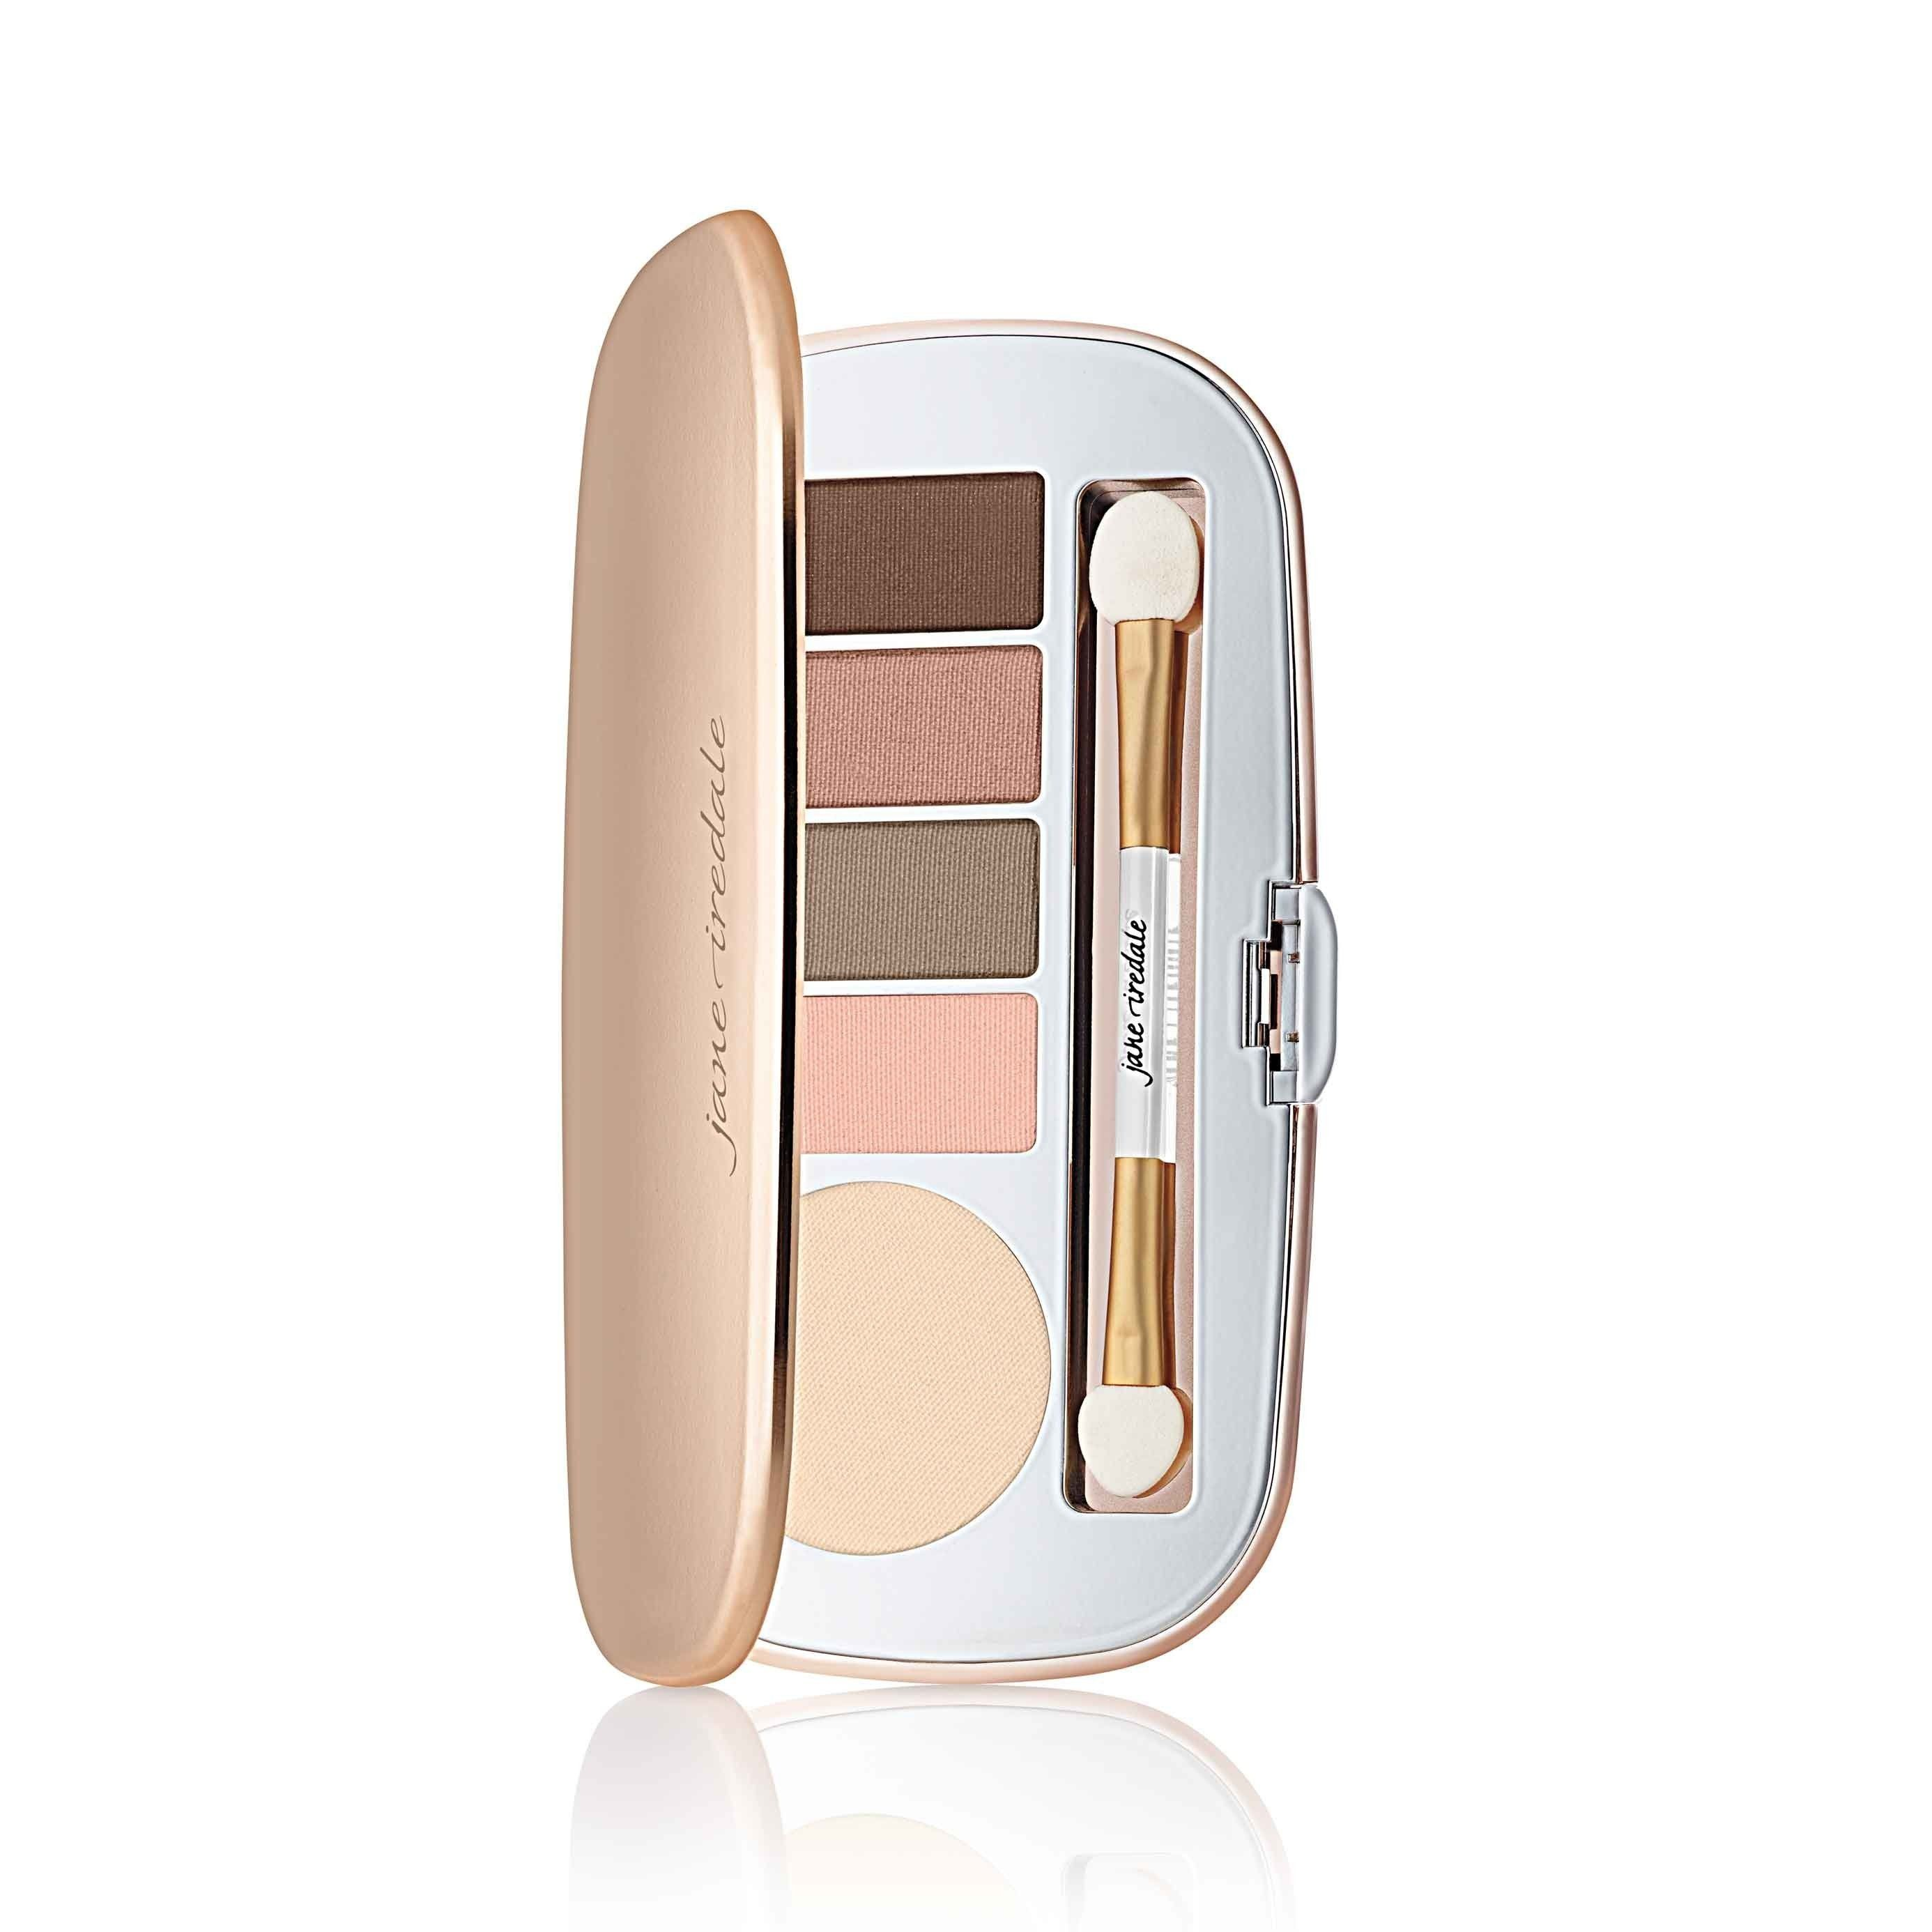 Jane iredale eye shadow kit products jane iredale eye shadow kit nvjuhfo Choice Image